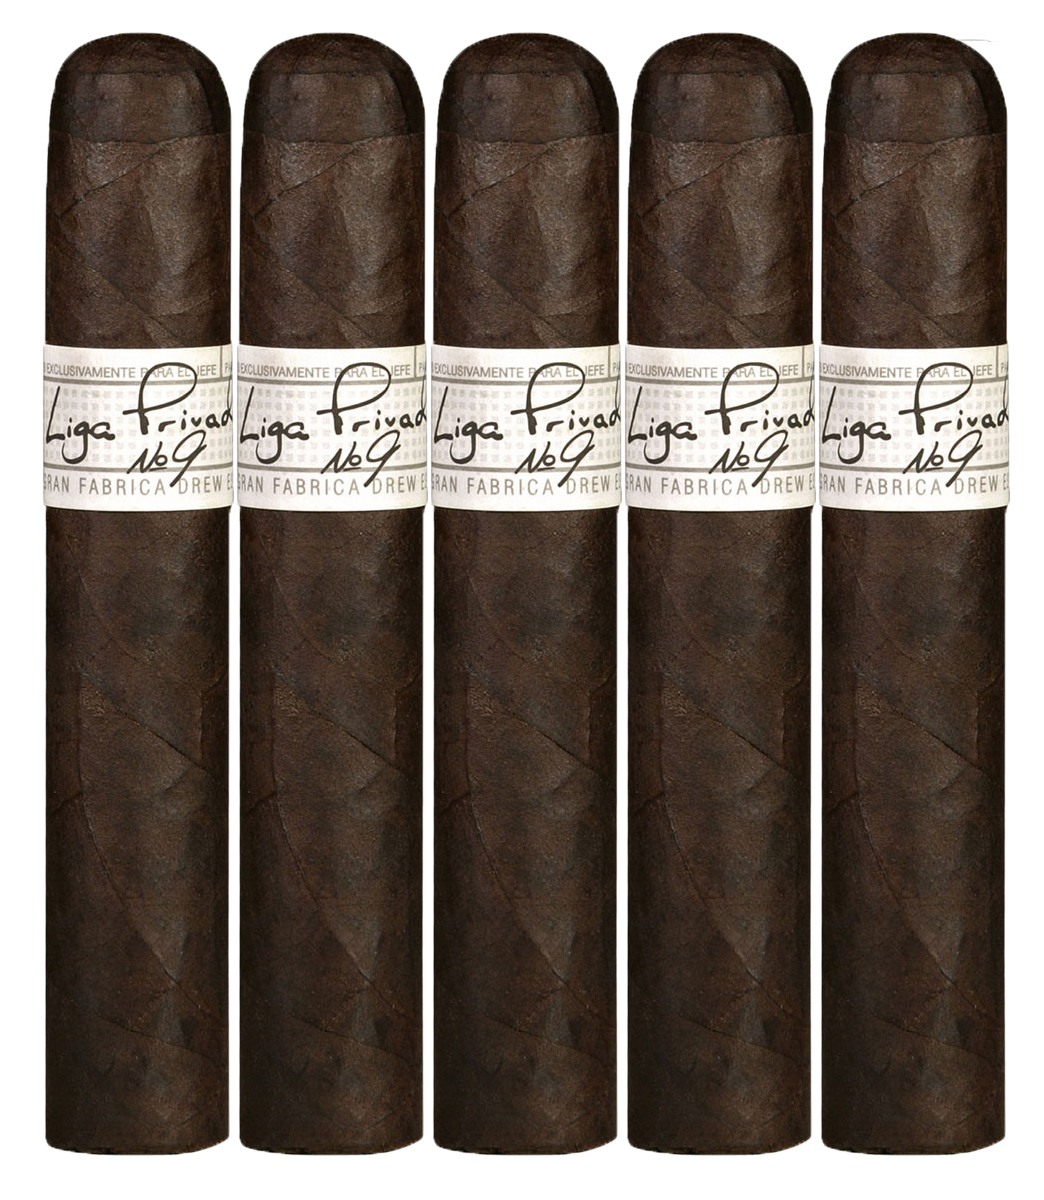 Liga Privada No.9 Petit Corona 5-pack